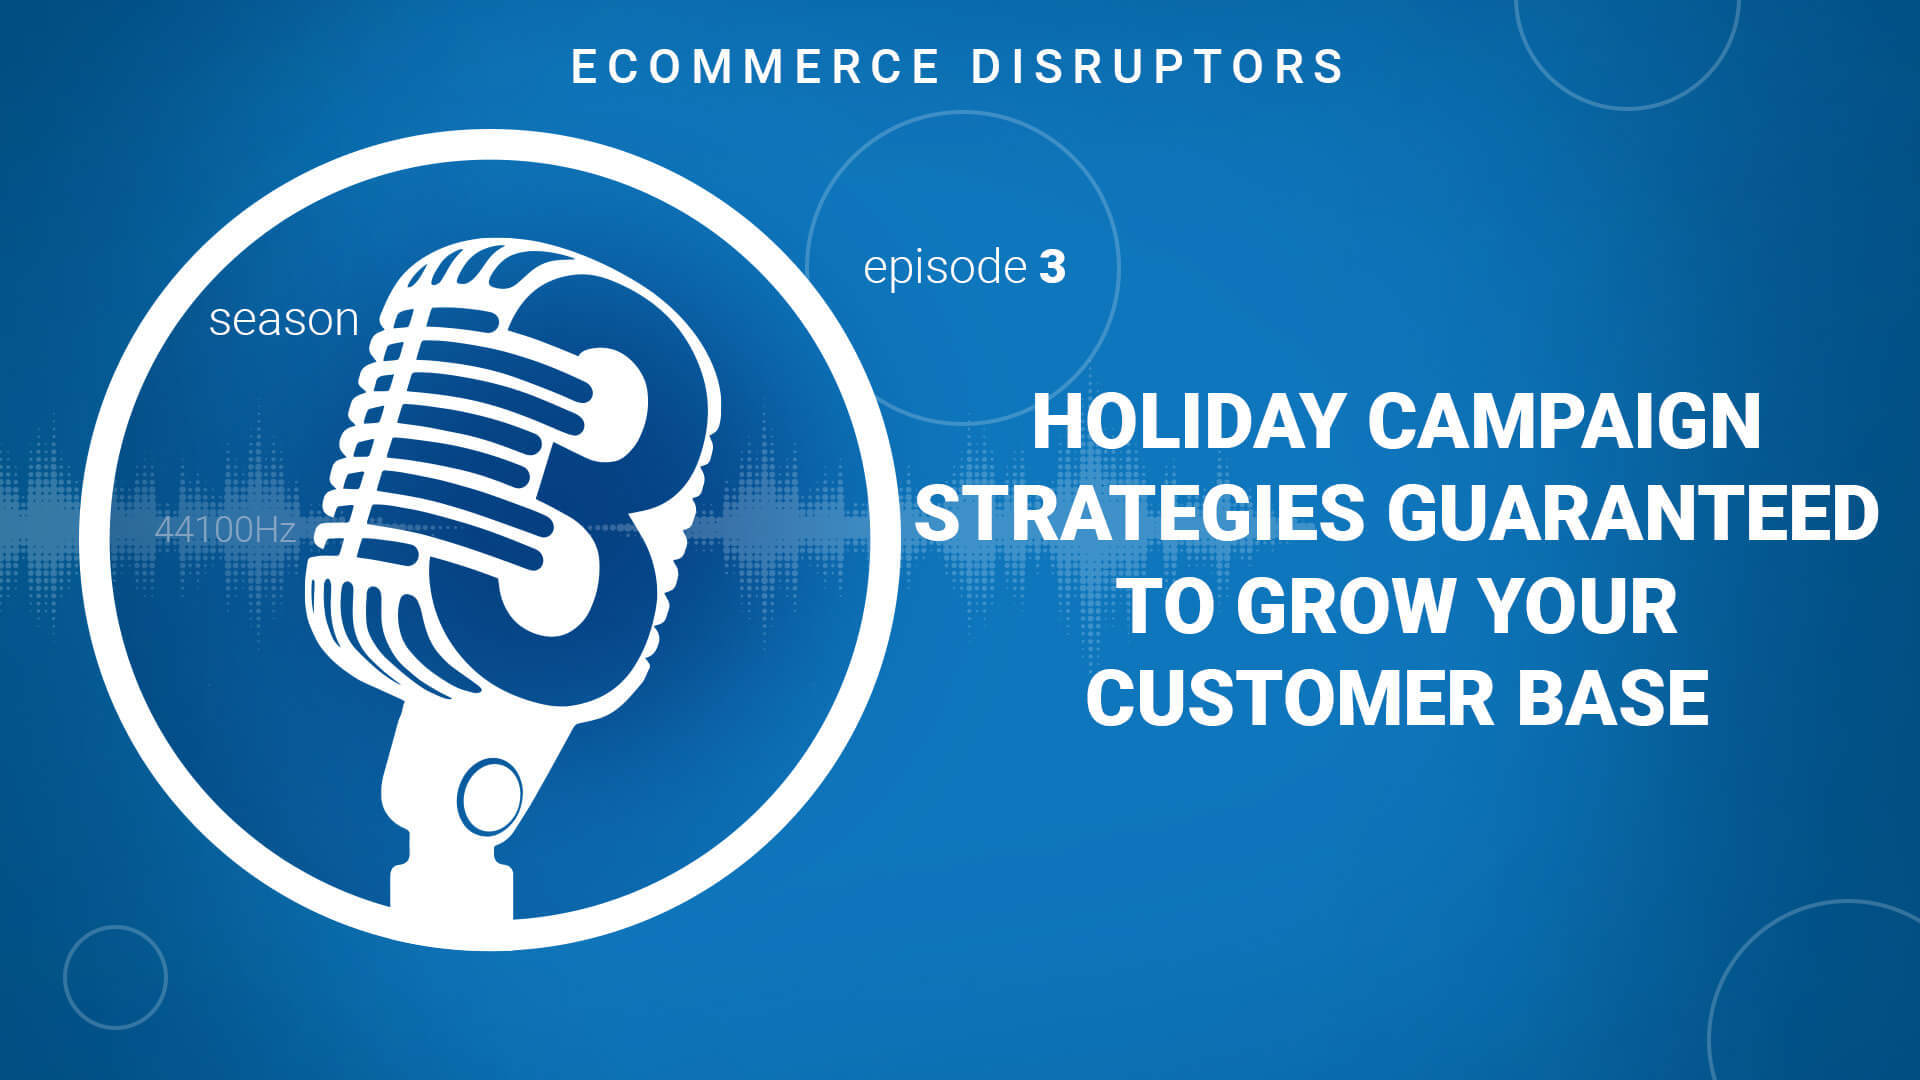 Holiday campaign strategies guaranteed to grow your customer base